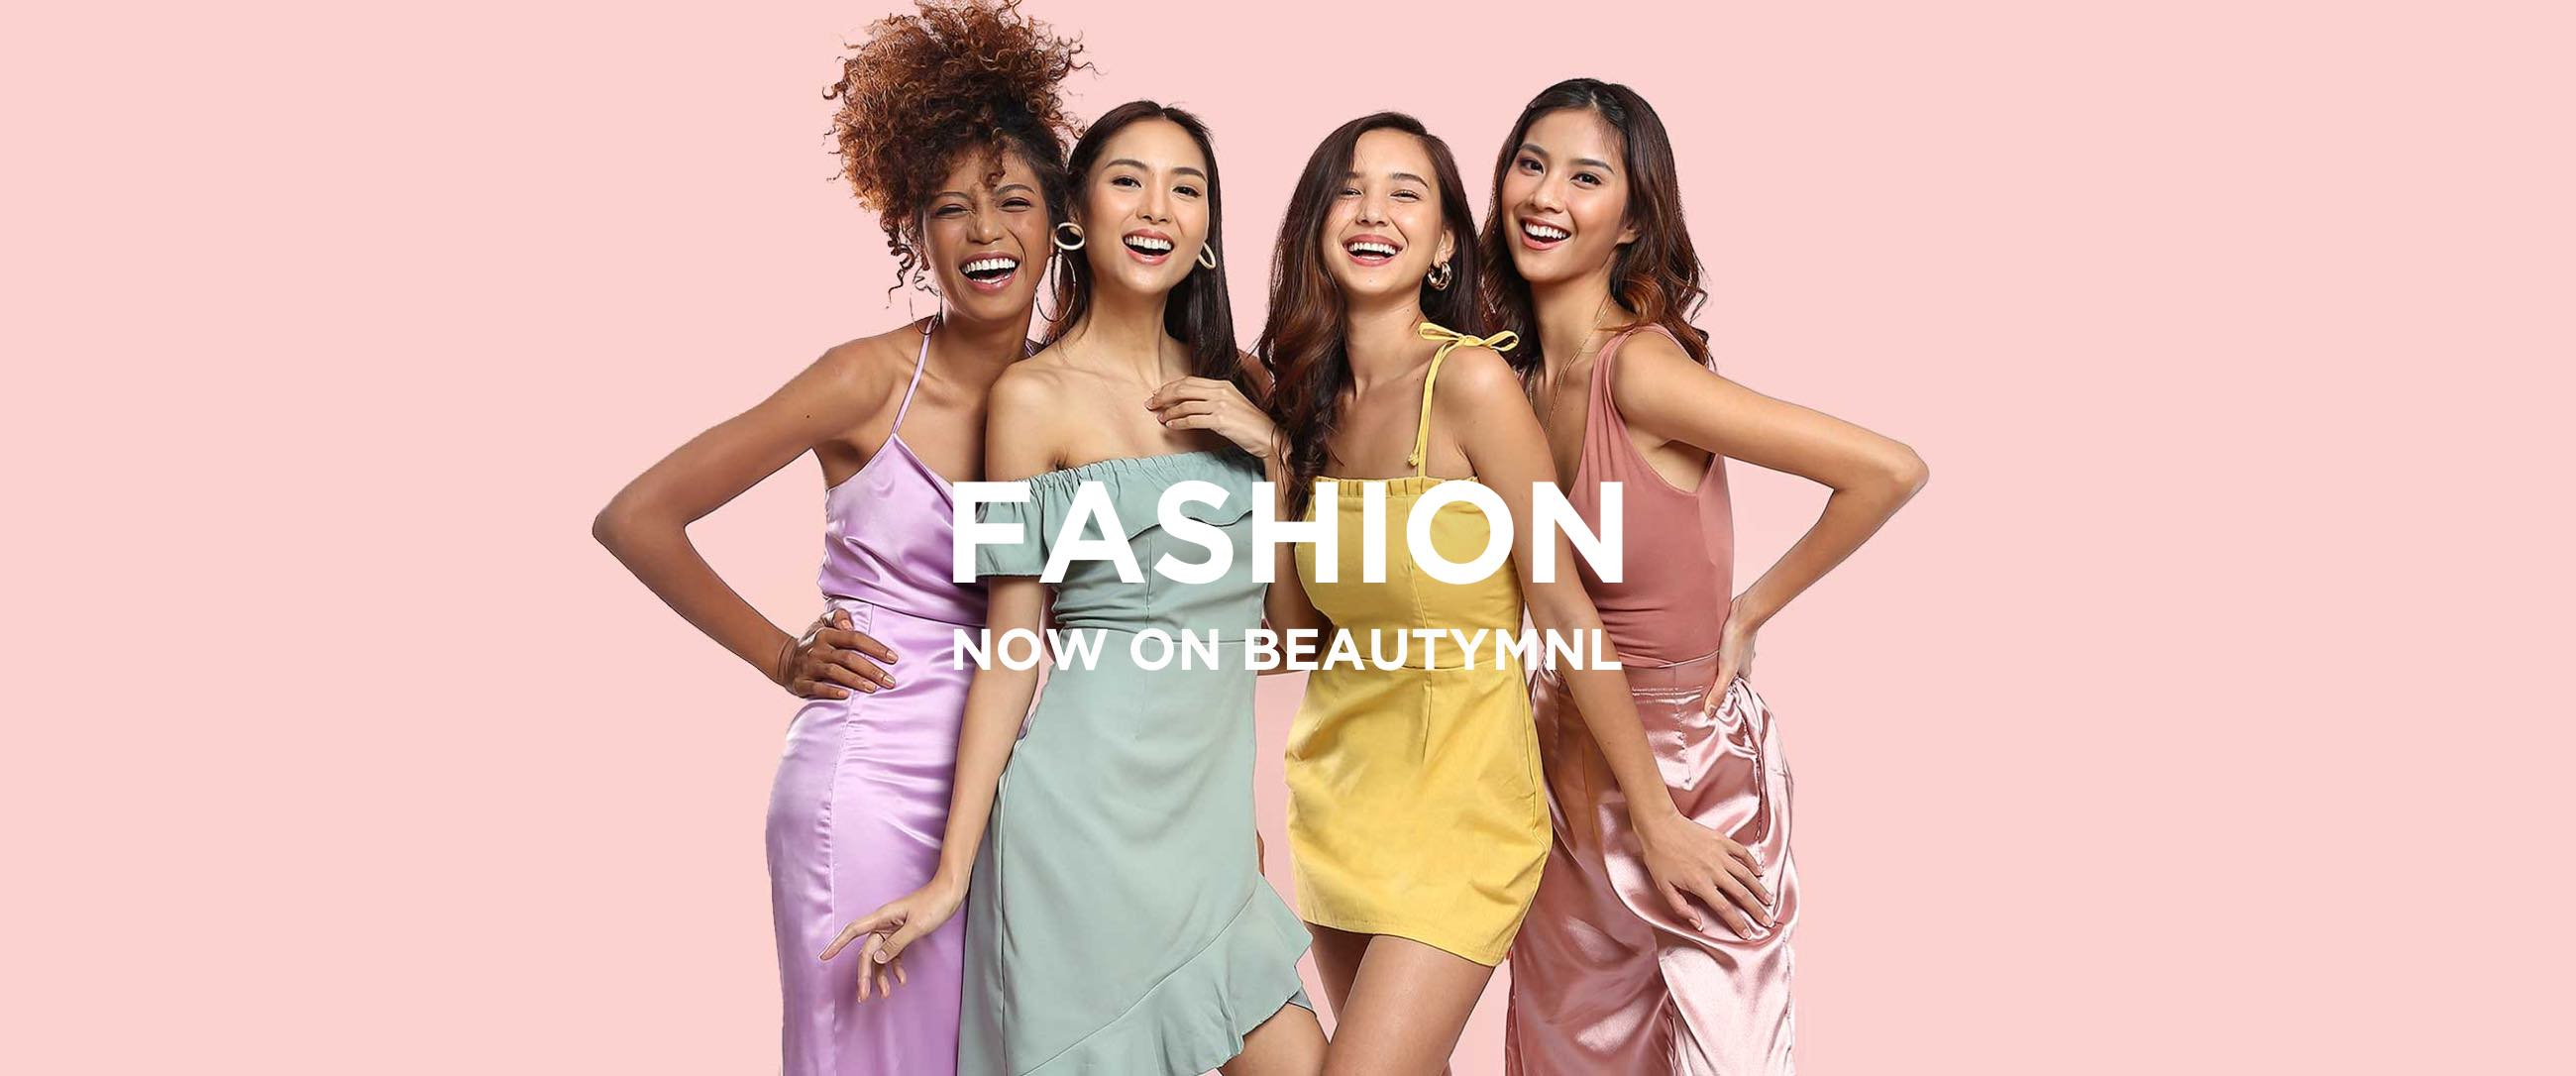 78884cf36 Buy - Best Makeup, Hair Care, Skin Care Sale Philippines | BeautyMNL